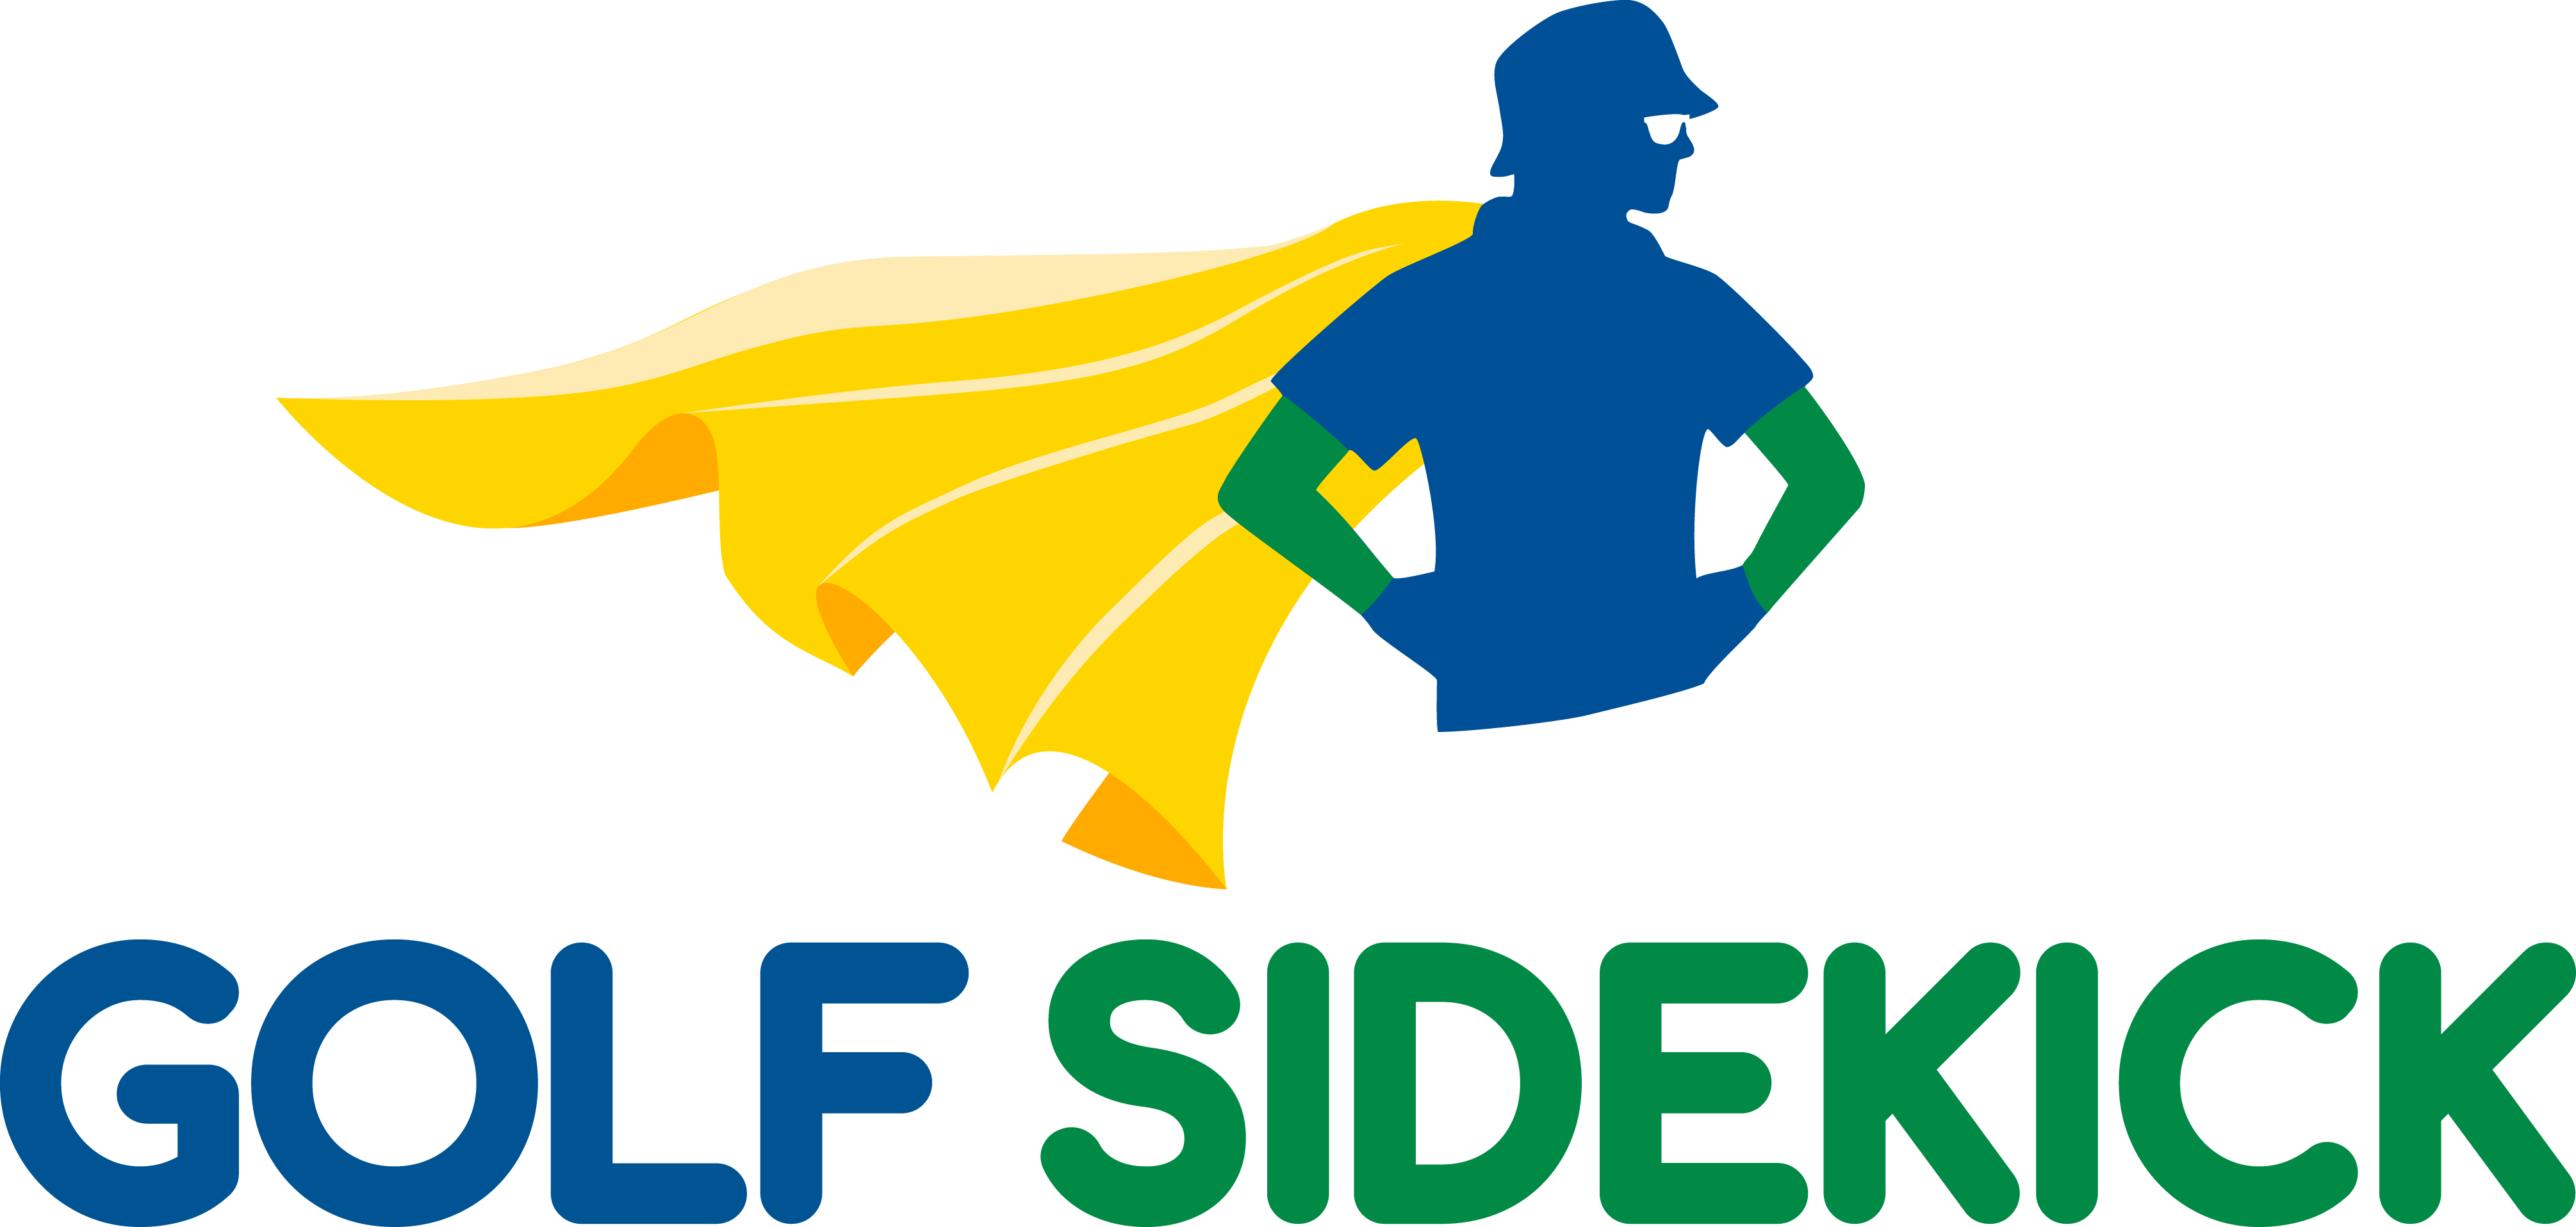 golf sidekick logo